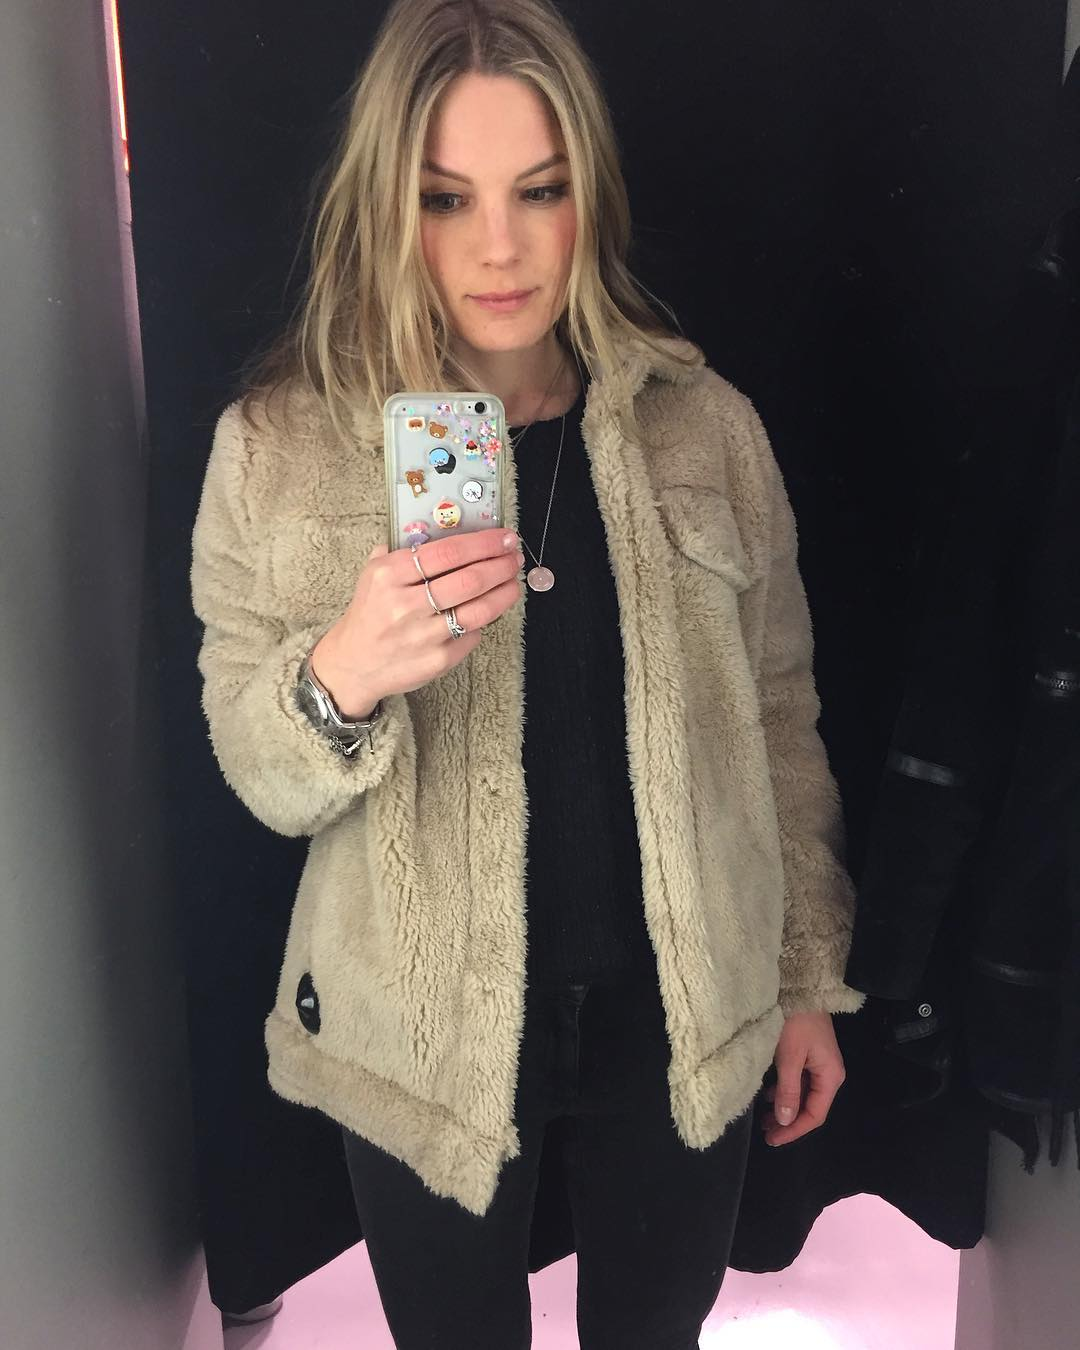 Another mirror selfie in another warm jacket  Bye Oslo!hellip